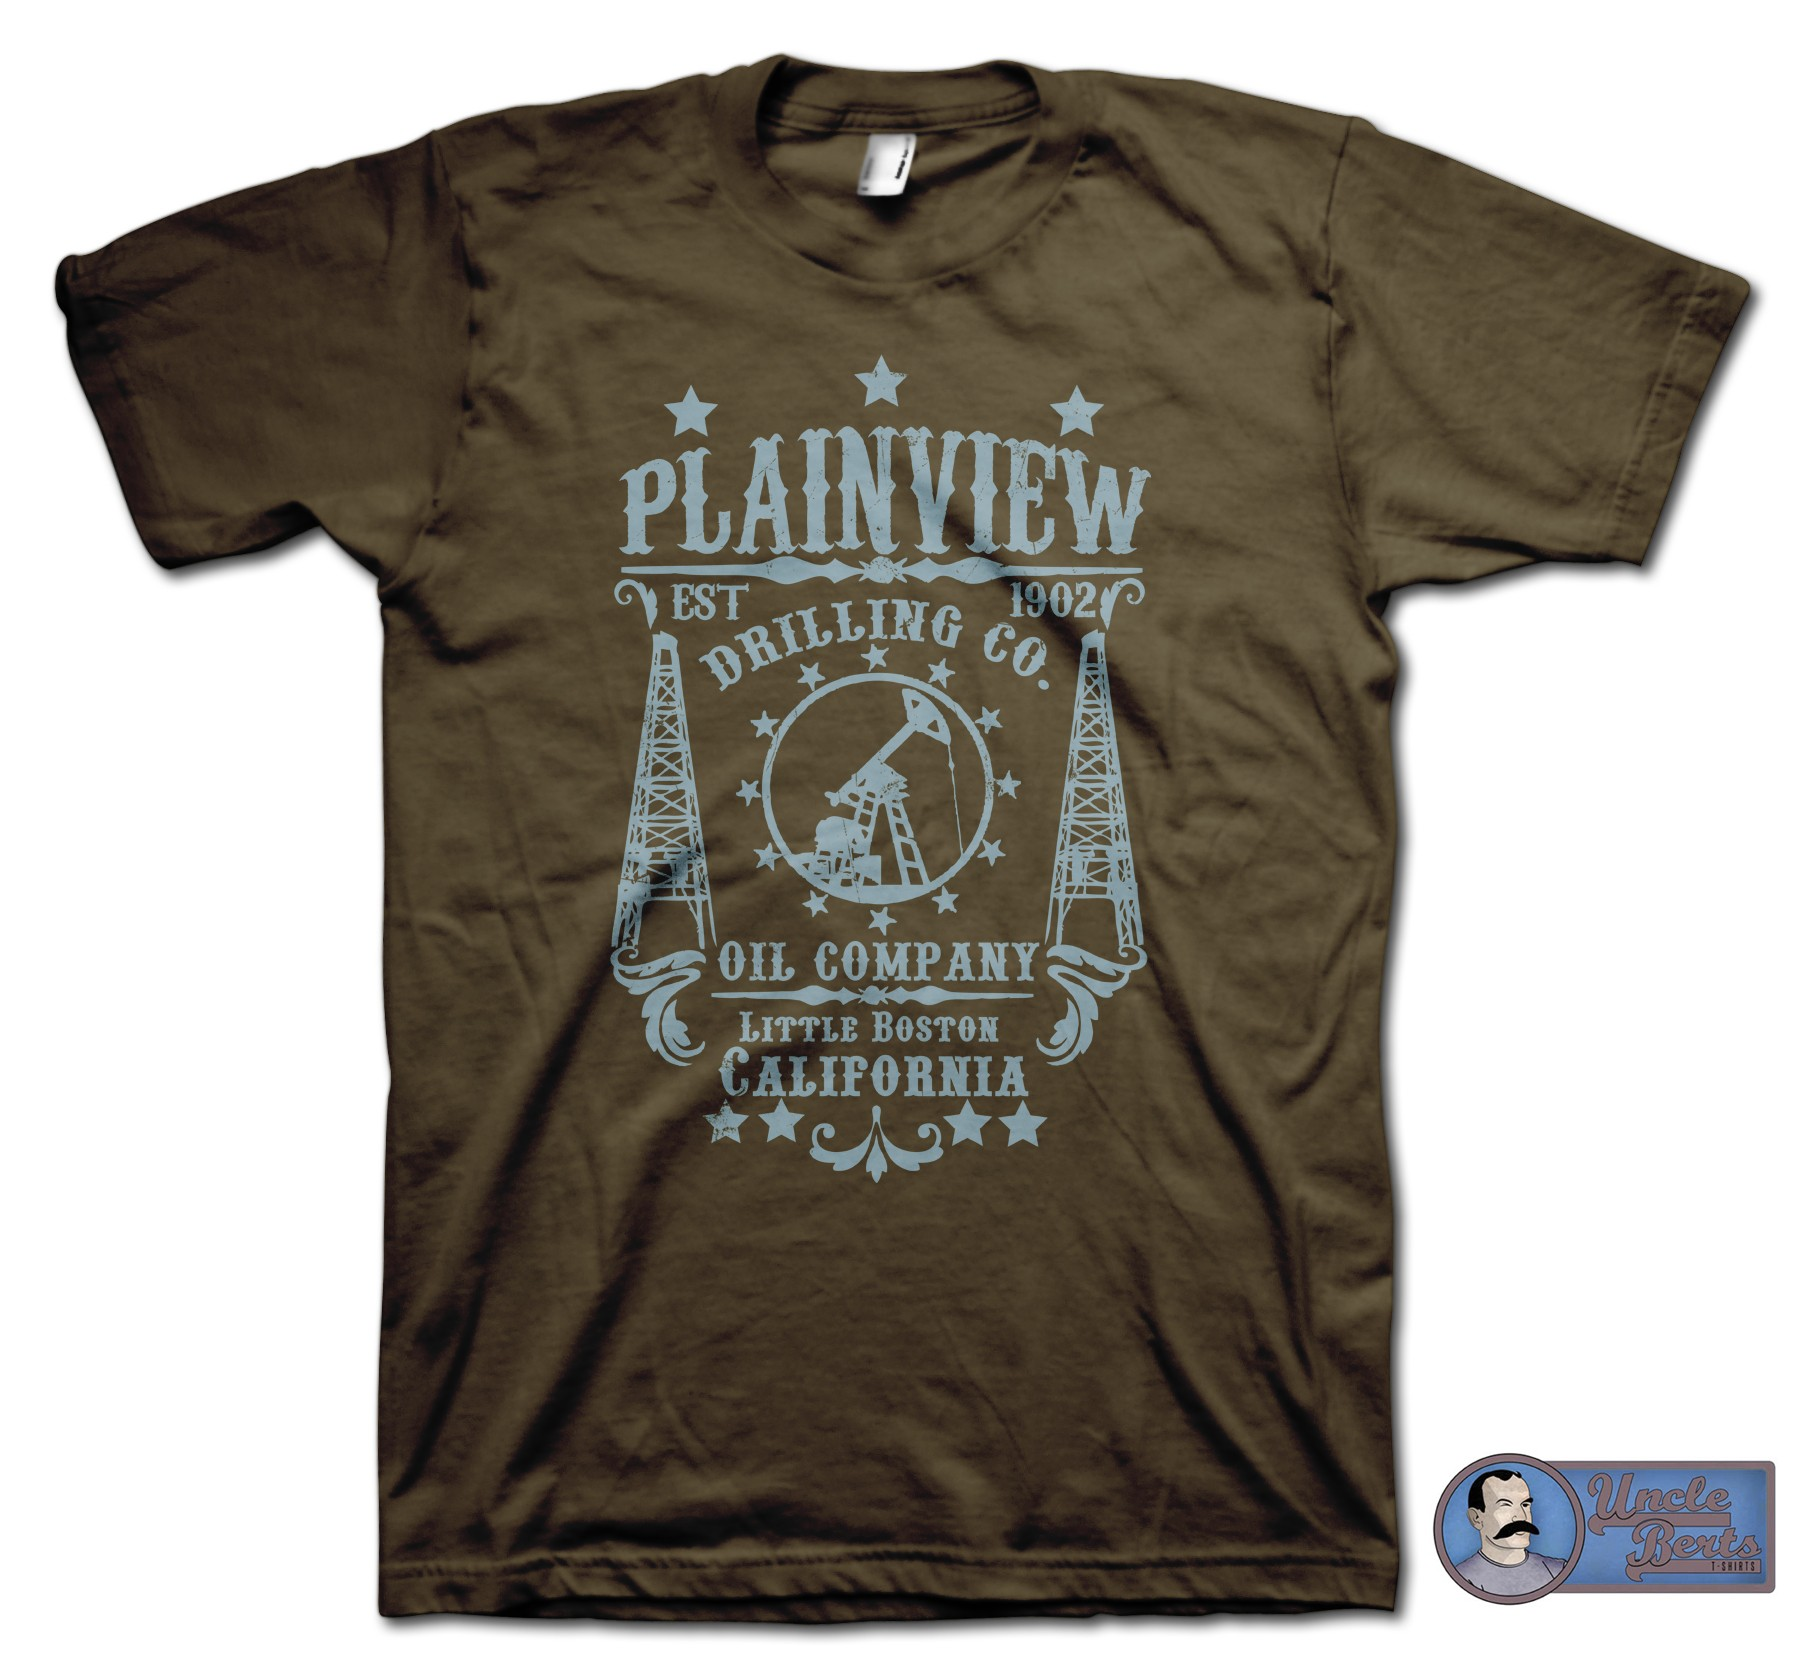 There Will Be Blood (2007) Inspired Plainview Drilling Co. T-Shirt